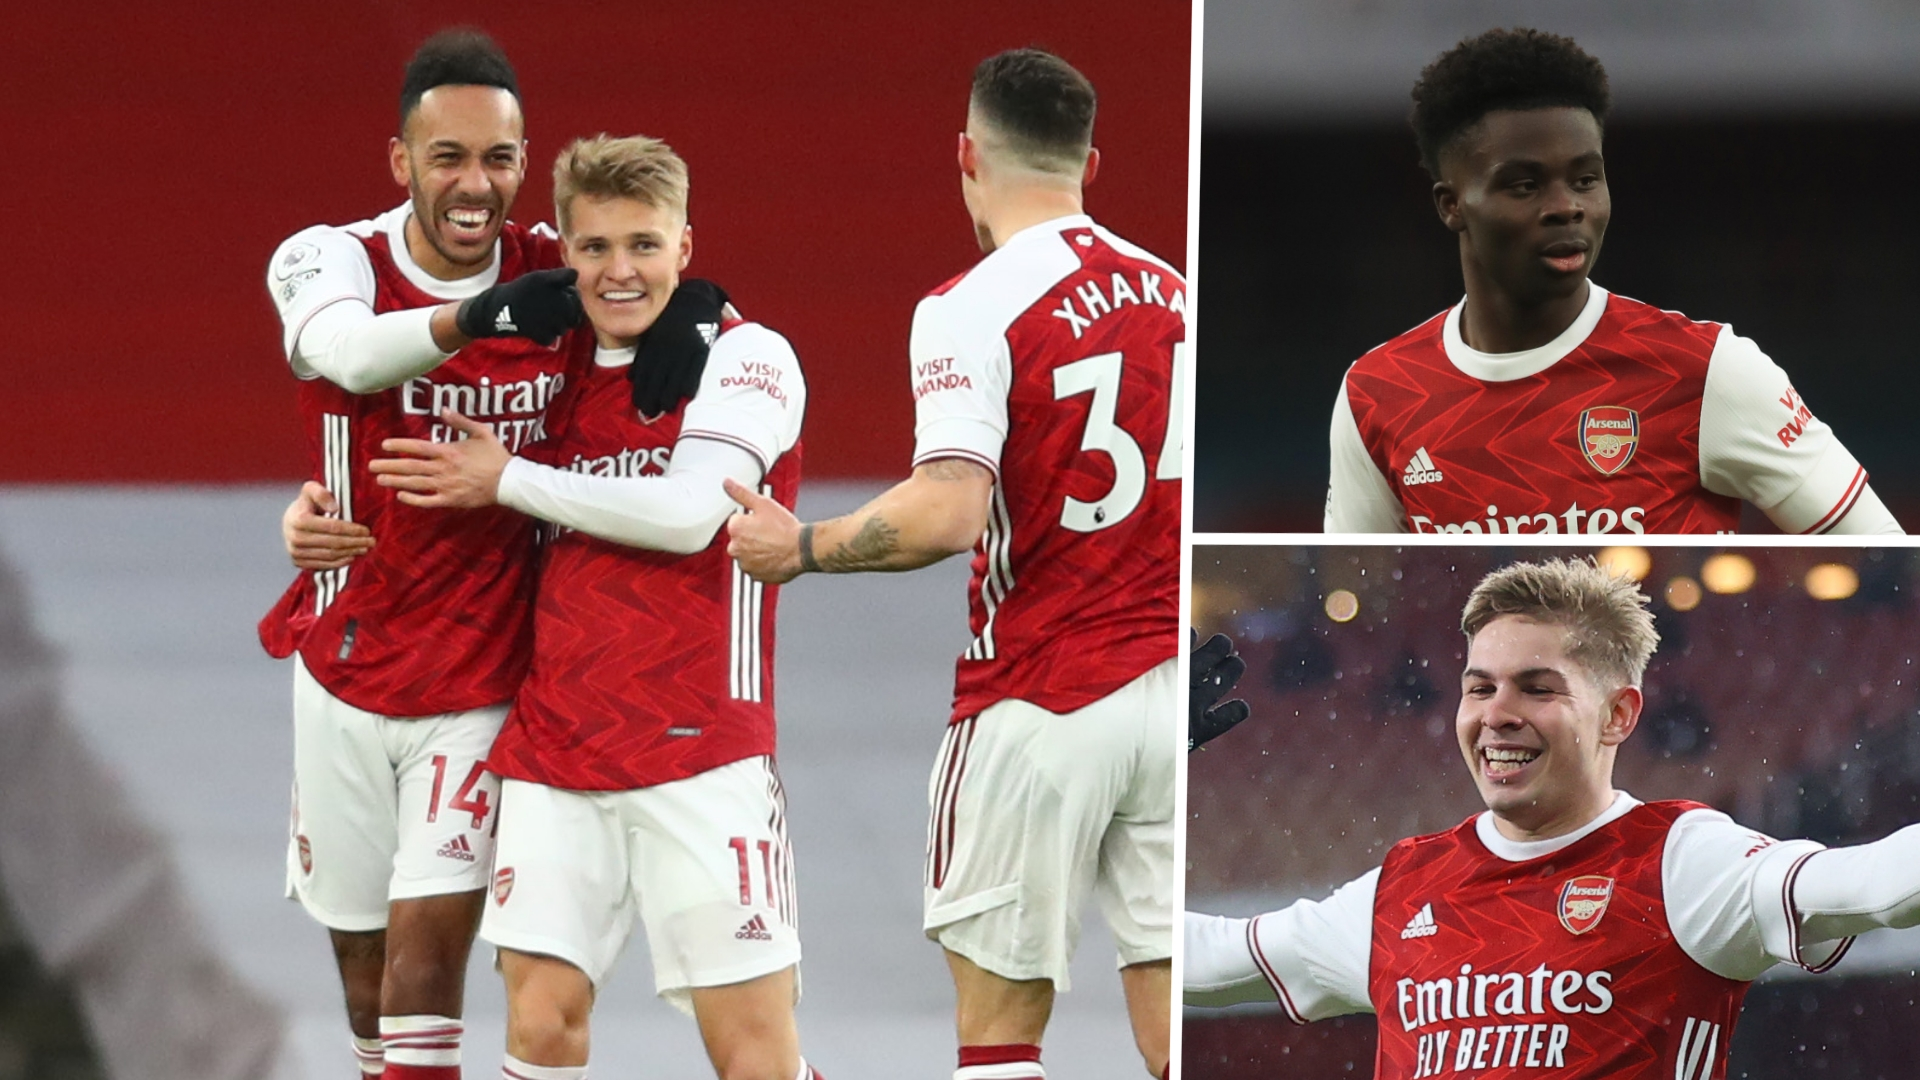 Arsenal's new love story: Aubameyang the big winner as young playmakers leave Leeds in a daze